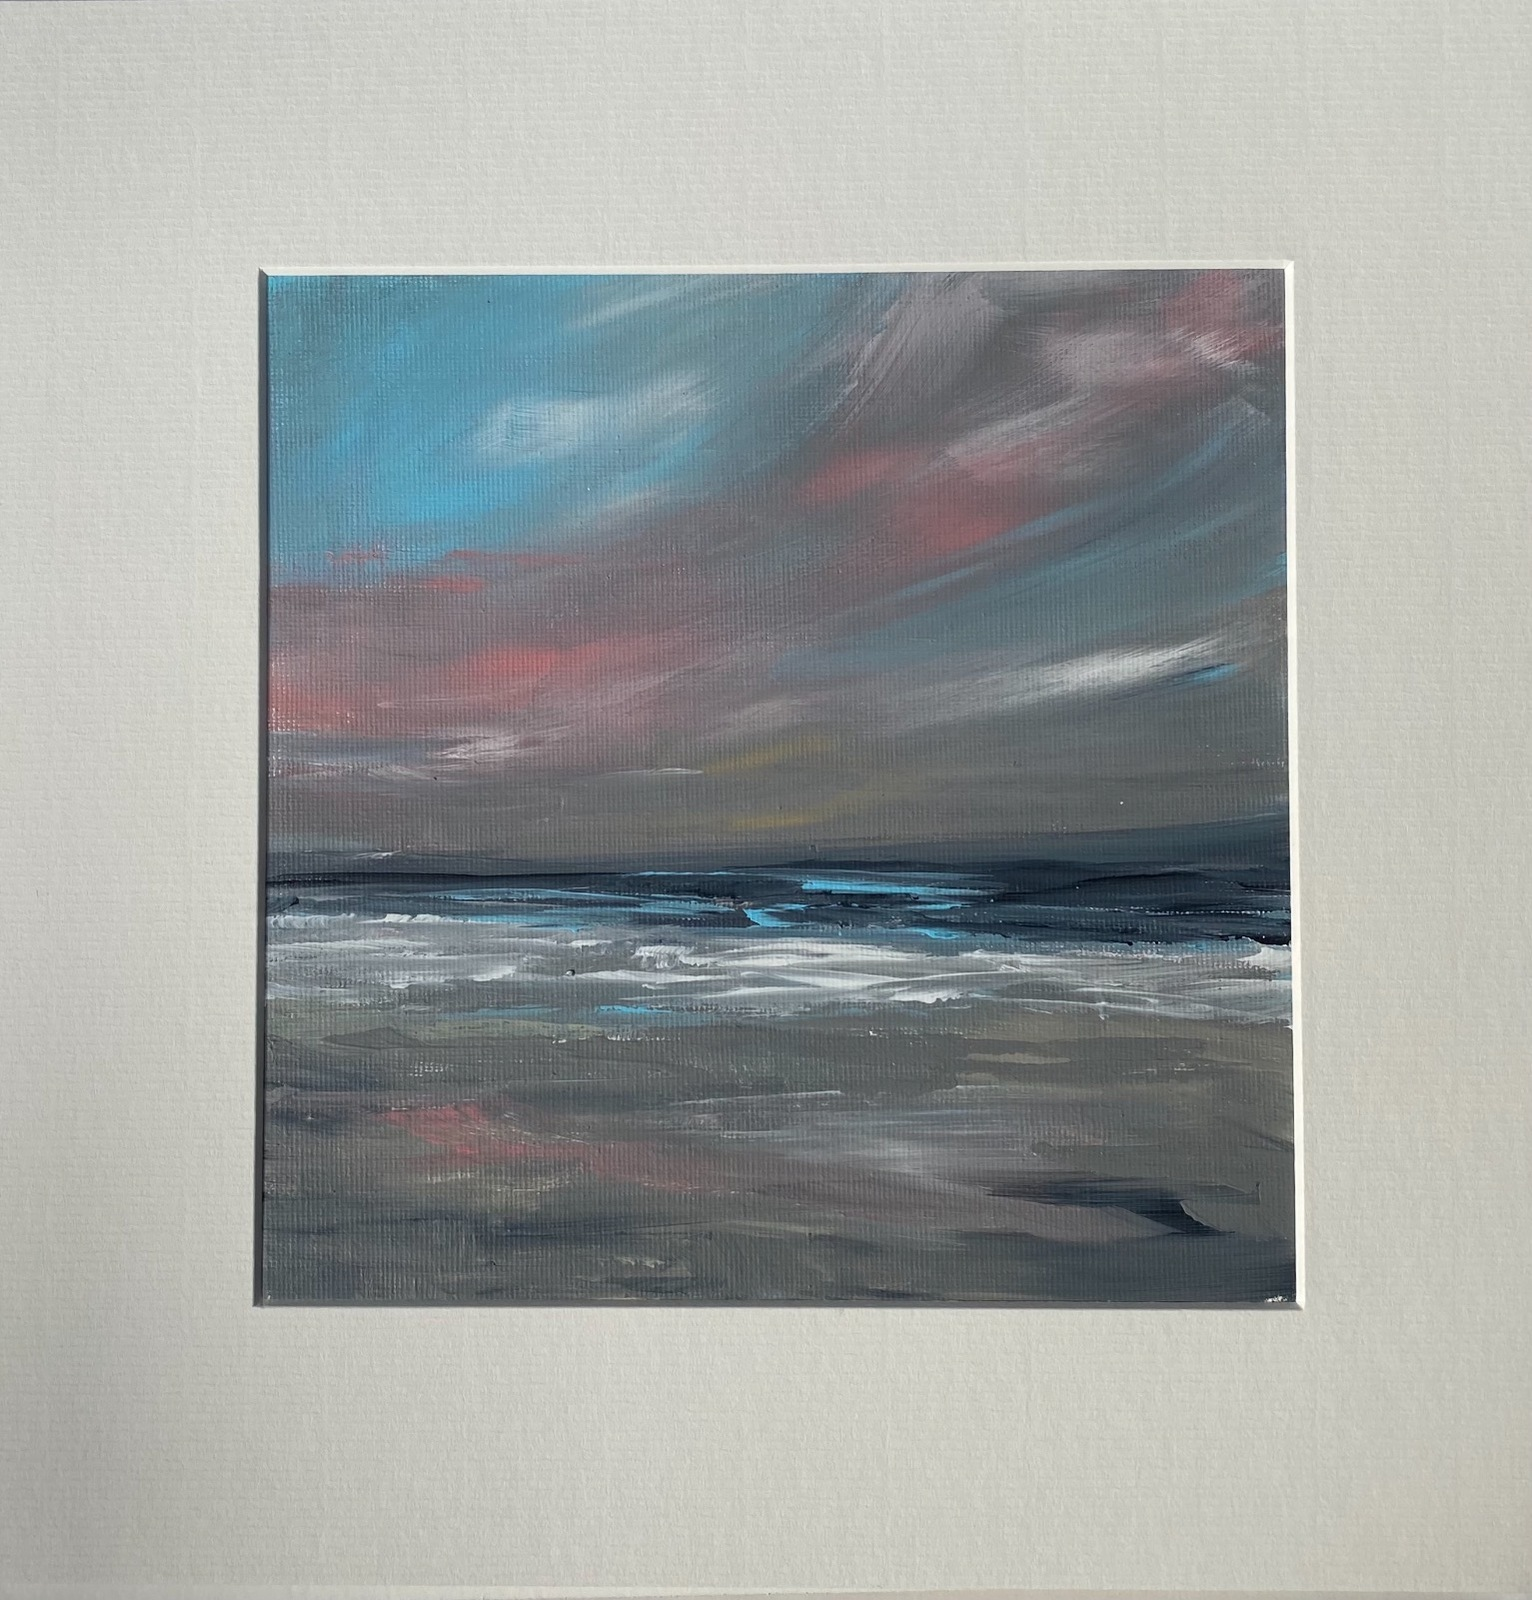 Abstract seascape 2